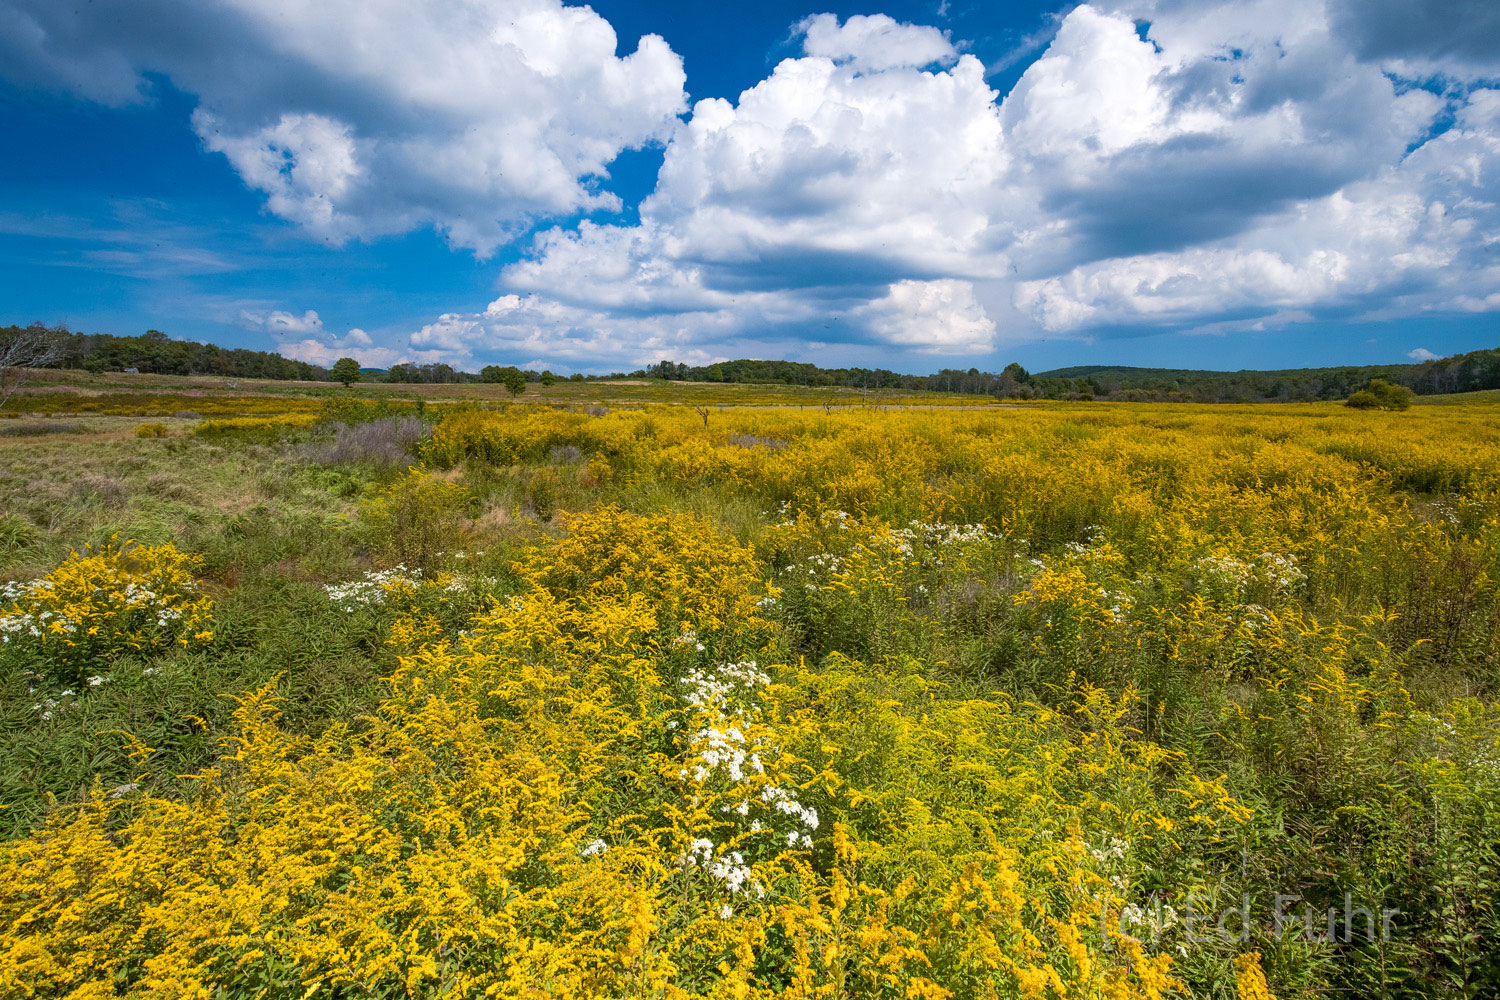 A  walk through a wild display of goldenrod in Big Meadows against blue skies, amidst a mild din from the thousands of bees and...